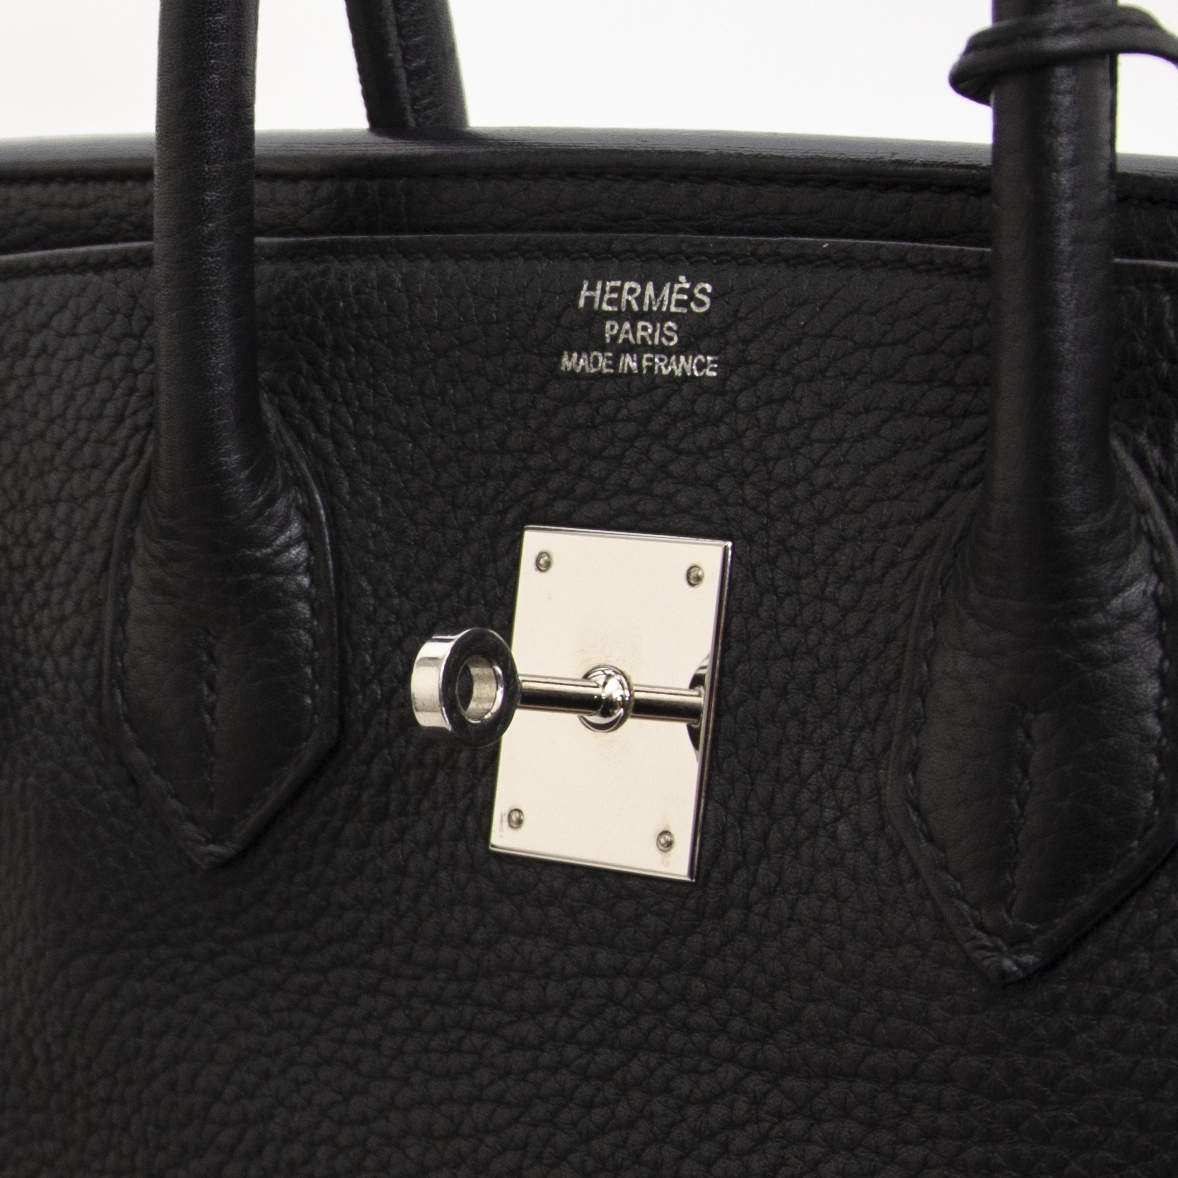 looking for a Hermès Birkin 35 Black Clemence Taurillon PHW? Right now for sale at labellov.com